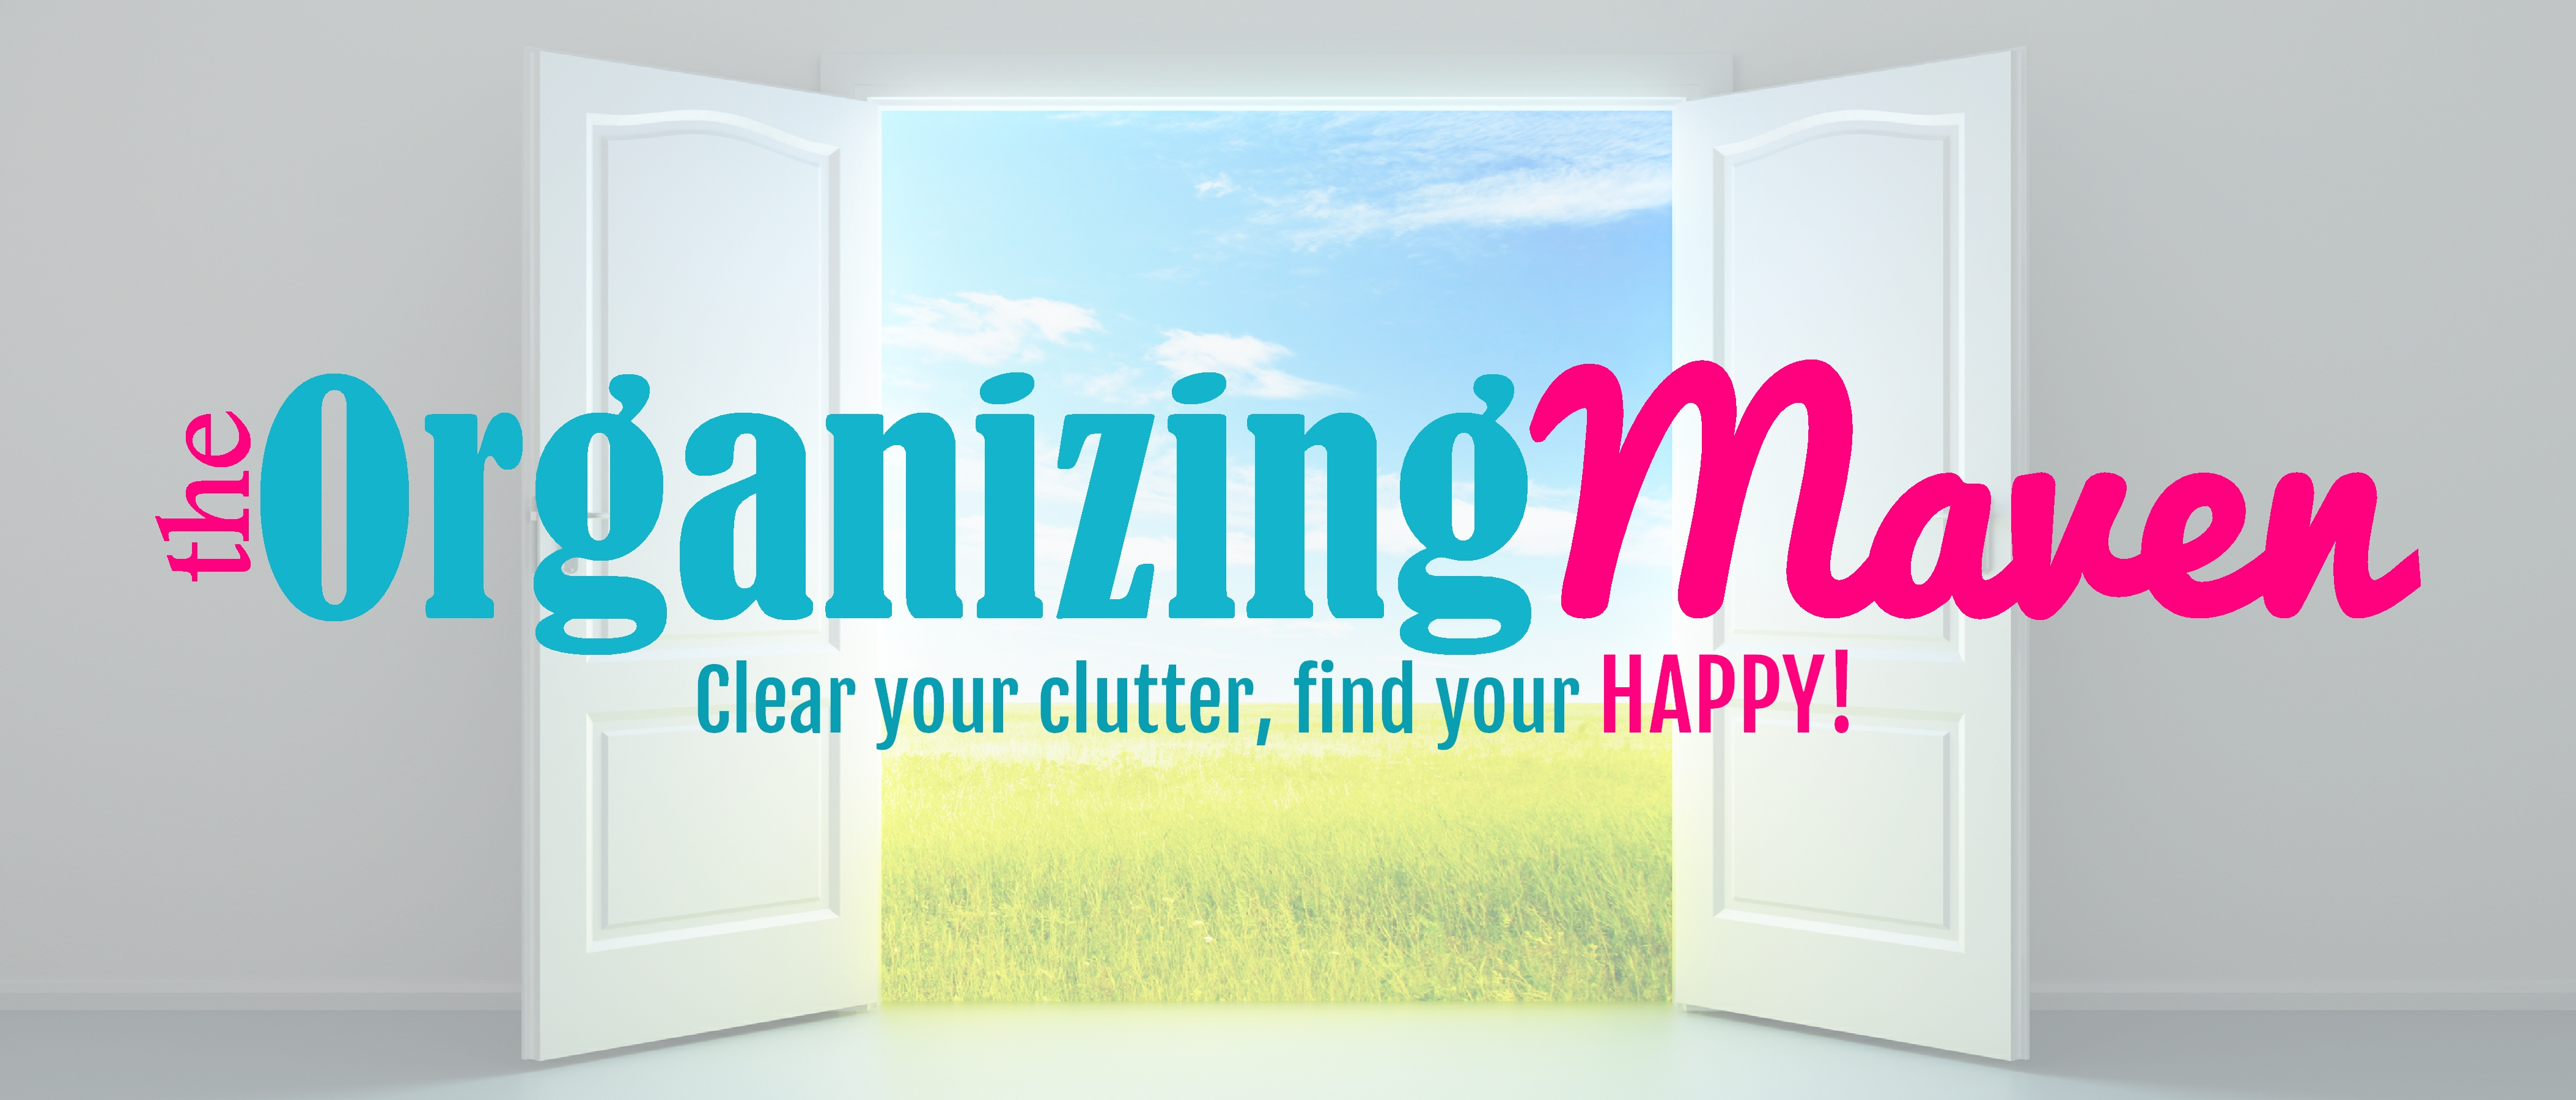 Declutter your life and get organized with the Organizing Maven - free e-course, tips and ideas for clutter free living!